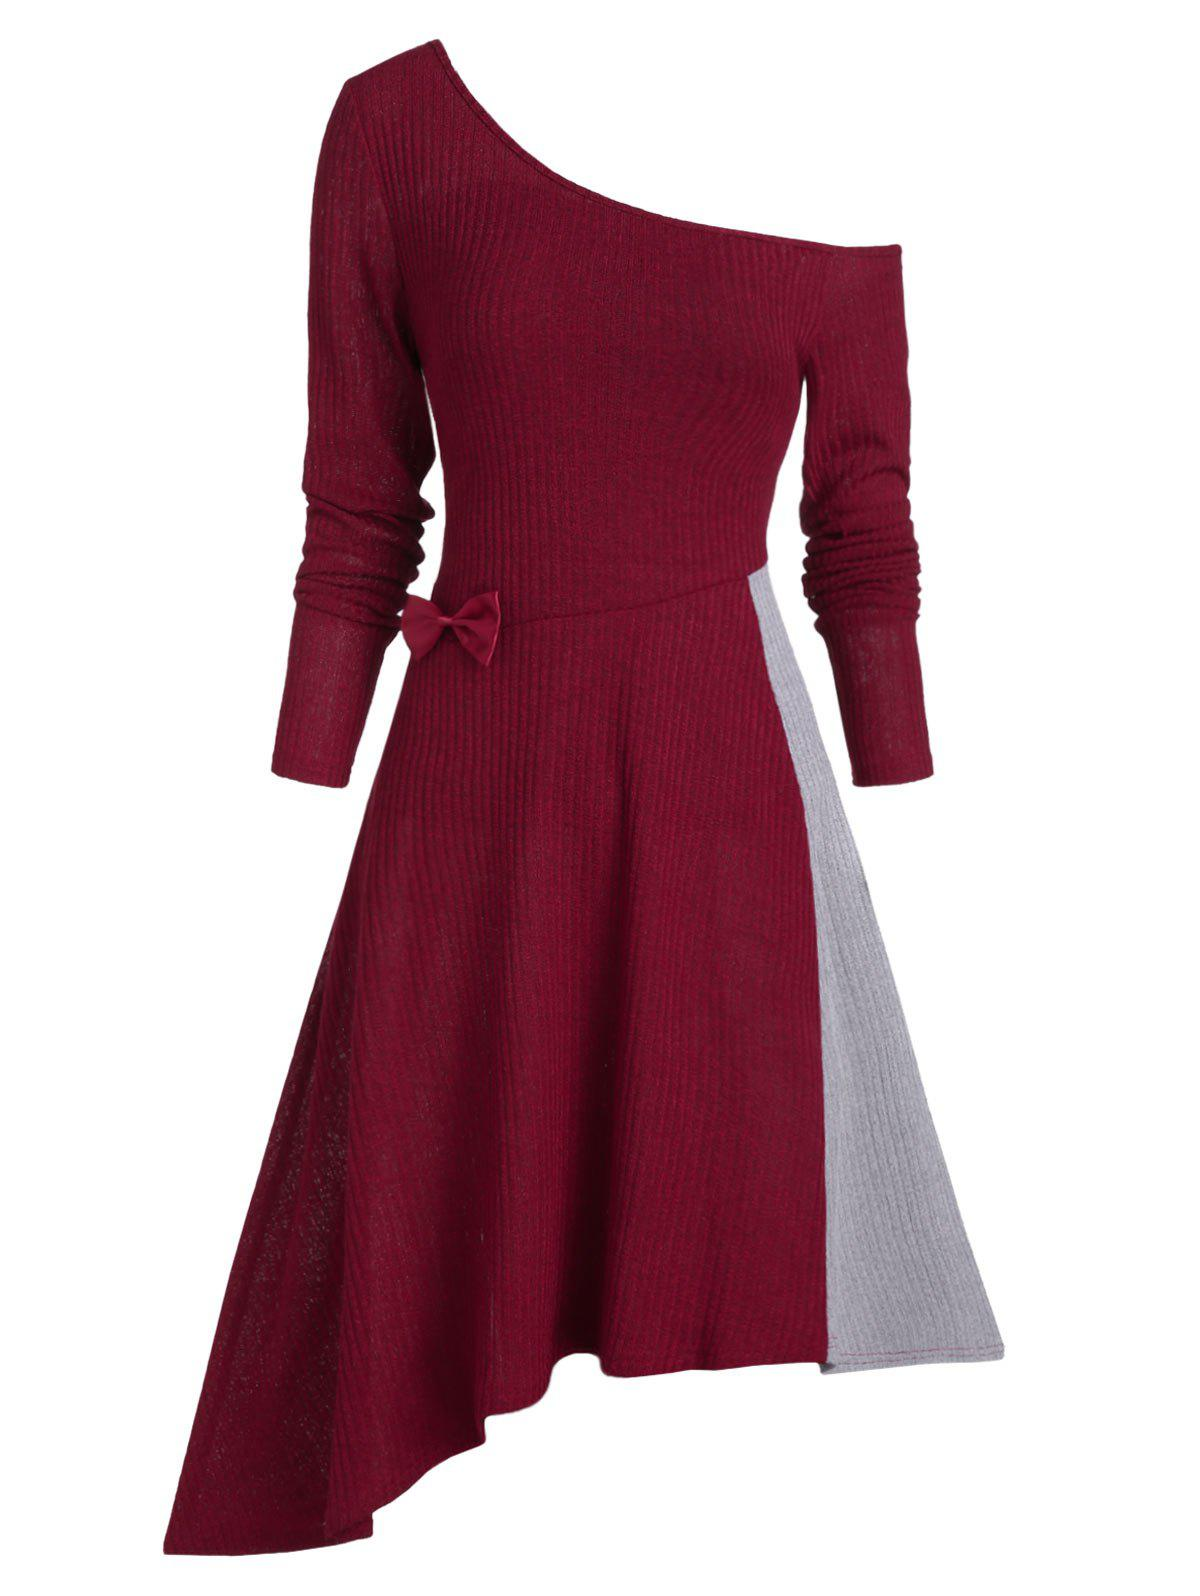 Cheap Skew Collar Long Sleeve Contrast Dress